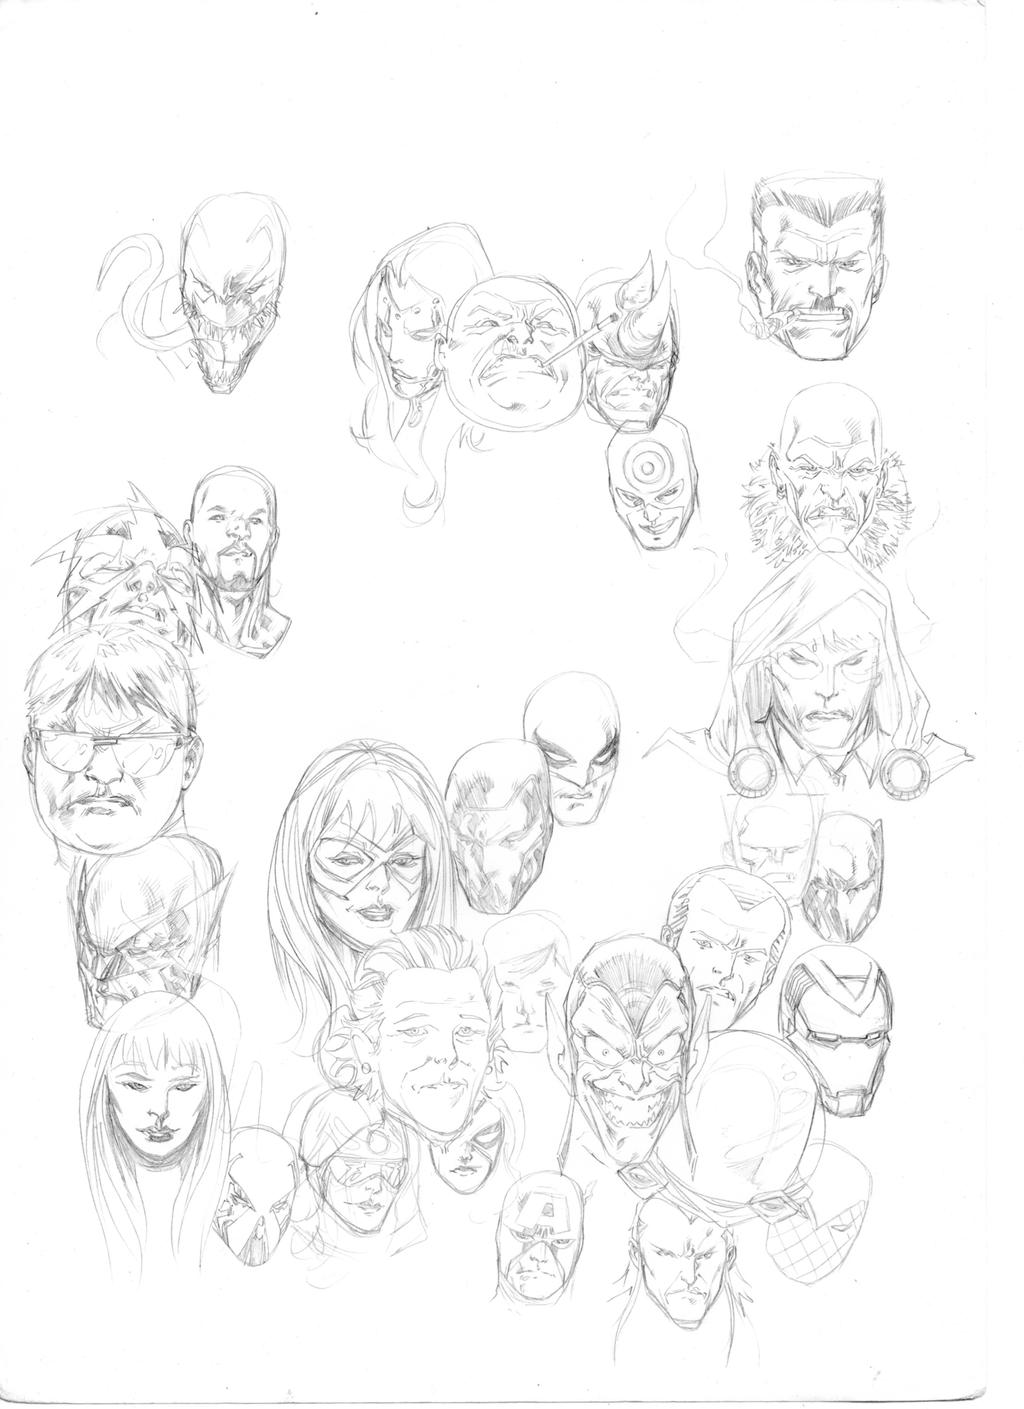 Spidey Thursday 26 headssketch by SpiderGuile